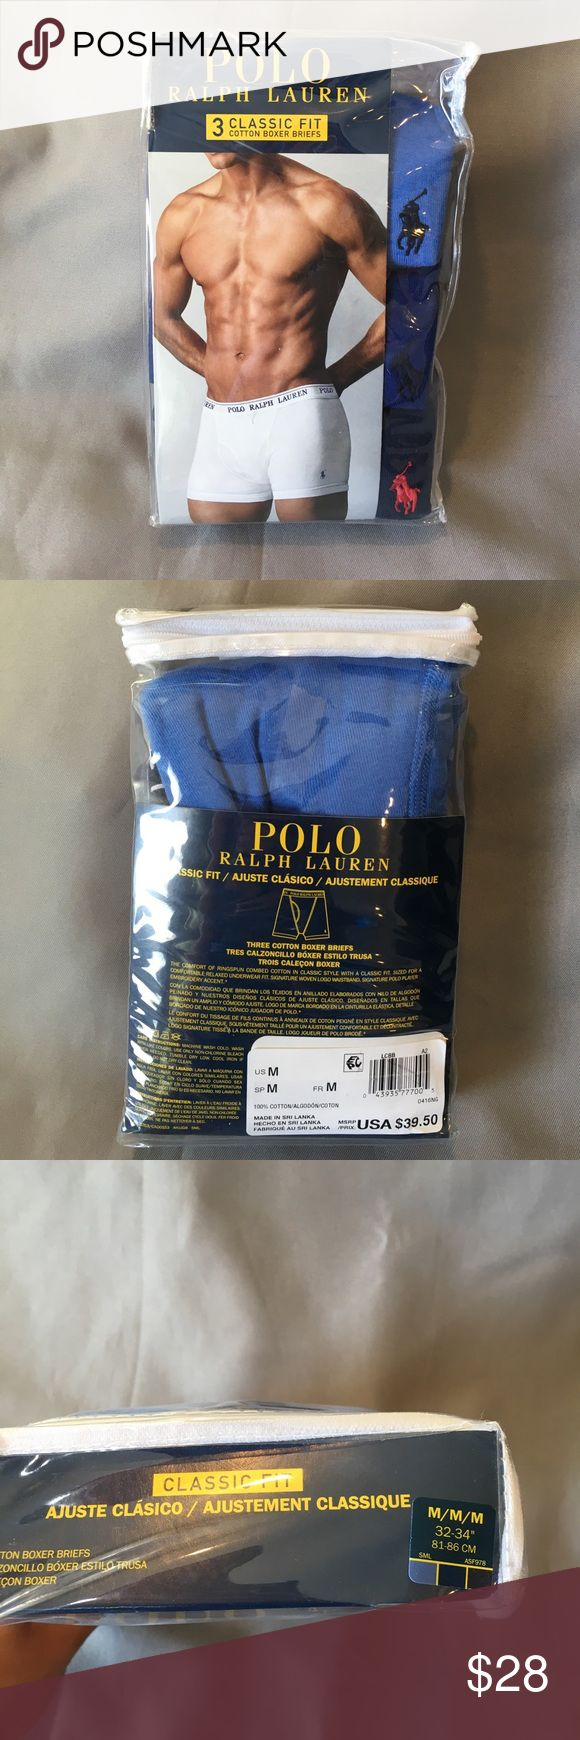 NWT Polo Ralph Lauren 3 Pack of Blue Boxer Briefs NWT Polo Ralph Lauren 3 Pack of Blue Boxer Briefs. Light blue, medium blue and navy blue. Classic fit. I have a total of 5 packages of mediums. If you'd like more then one package let me know and I can make you a new listing.  Please see other colors!  Thanks! Polo by Ralph Lauren Underwear & Socks Boxer Briefs